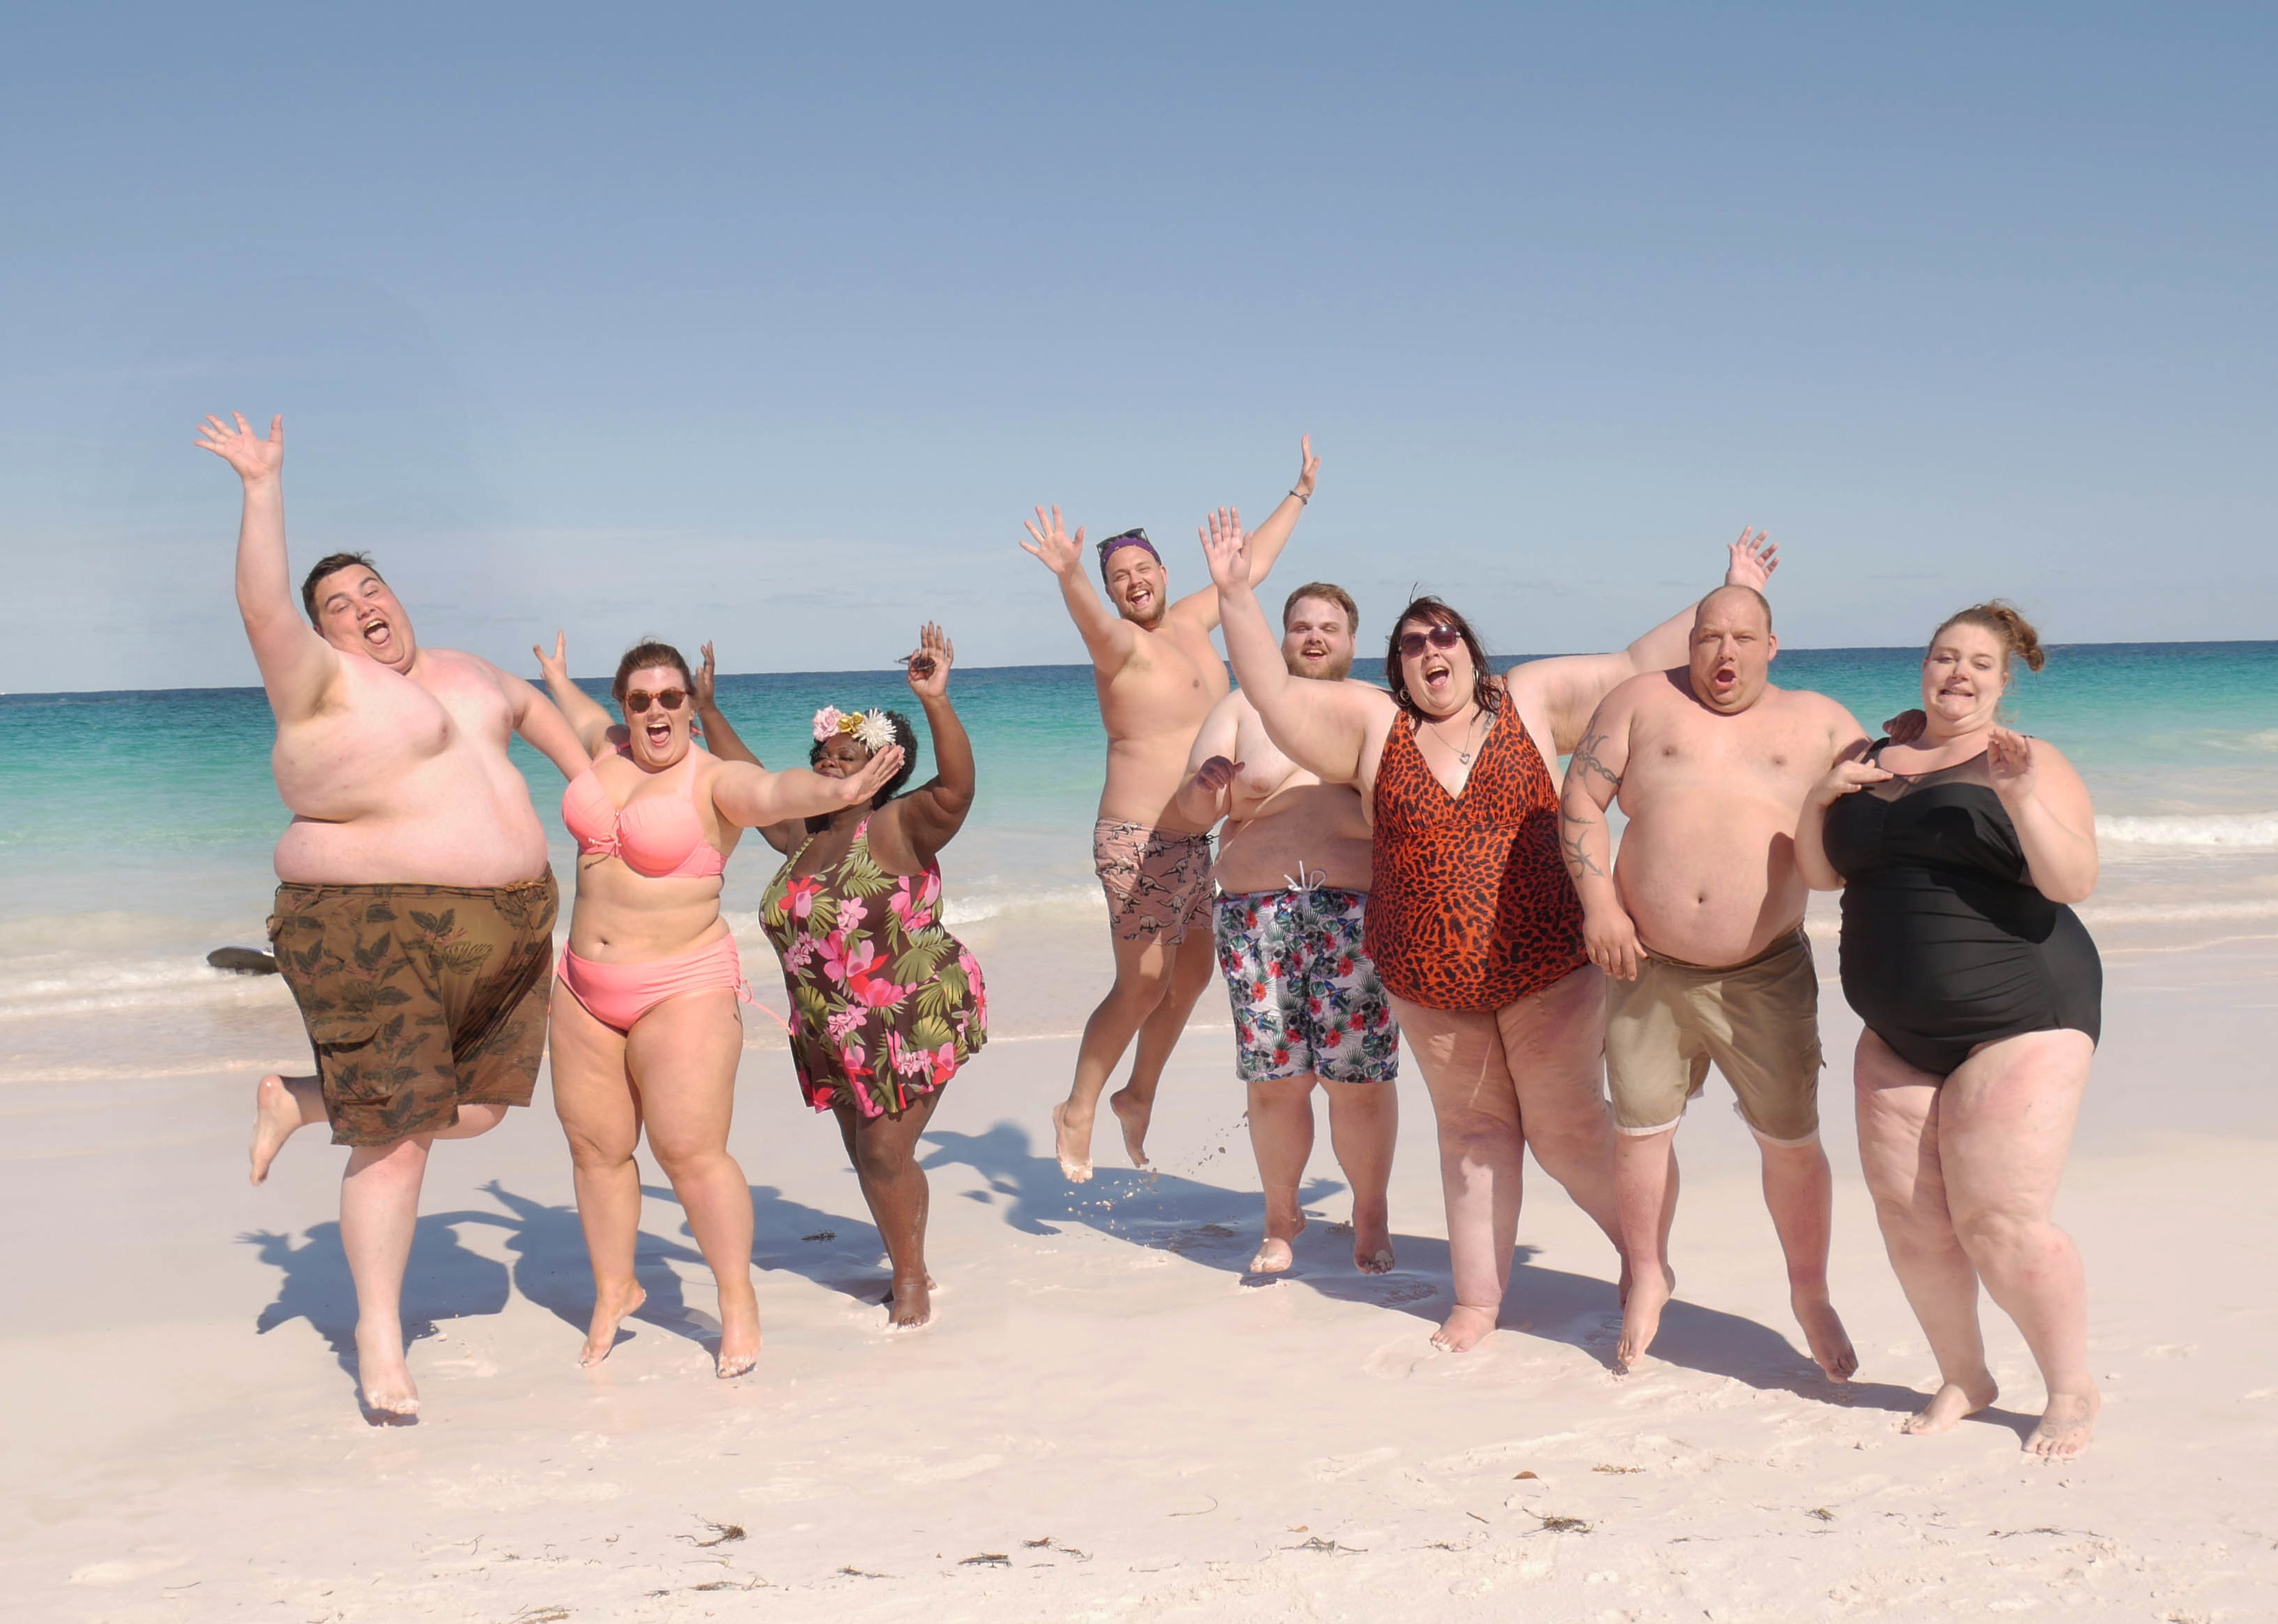 Steven, Holly, Sandra, David, Dane, Alice, Adam and Ami bare their bodies on the beach (Spungold, Peter Gray)